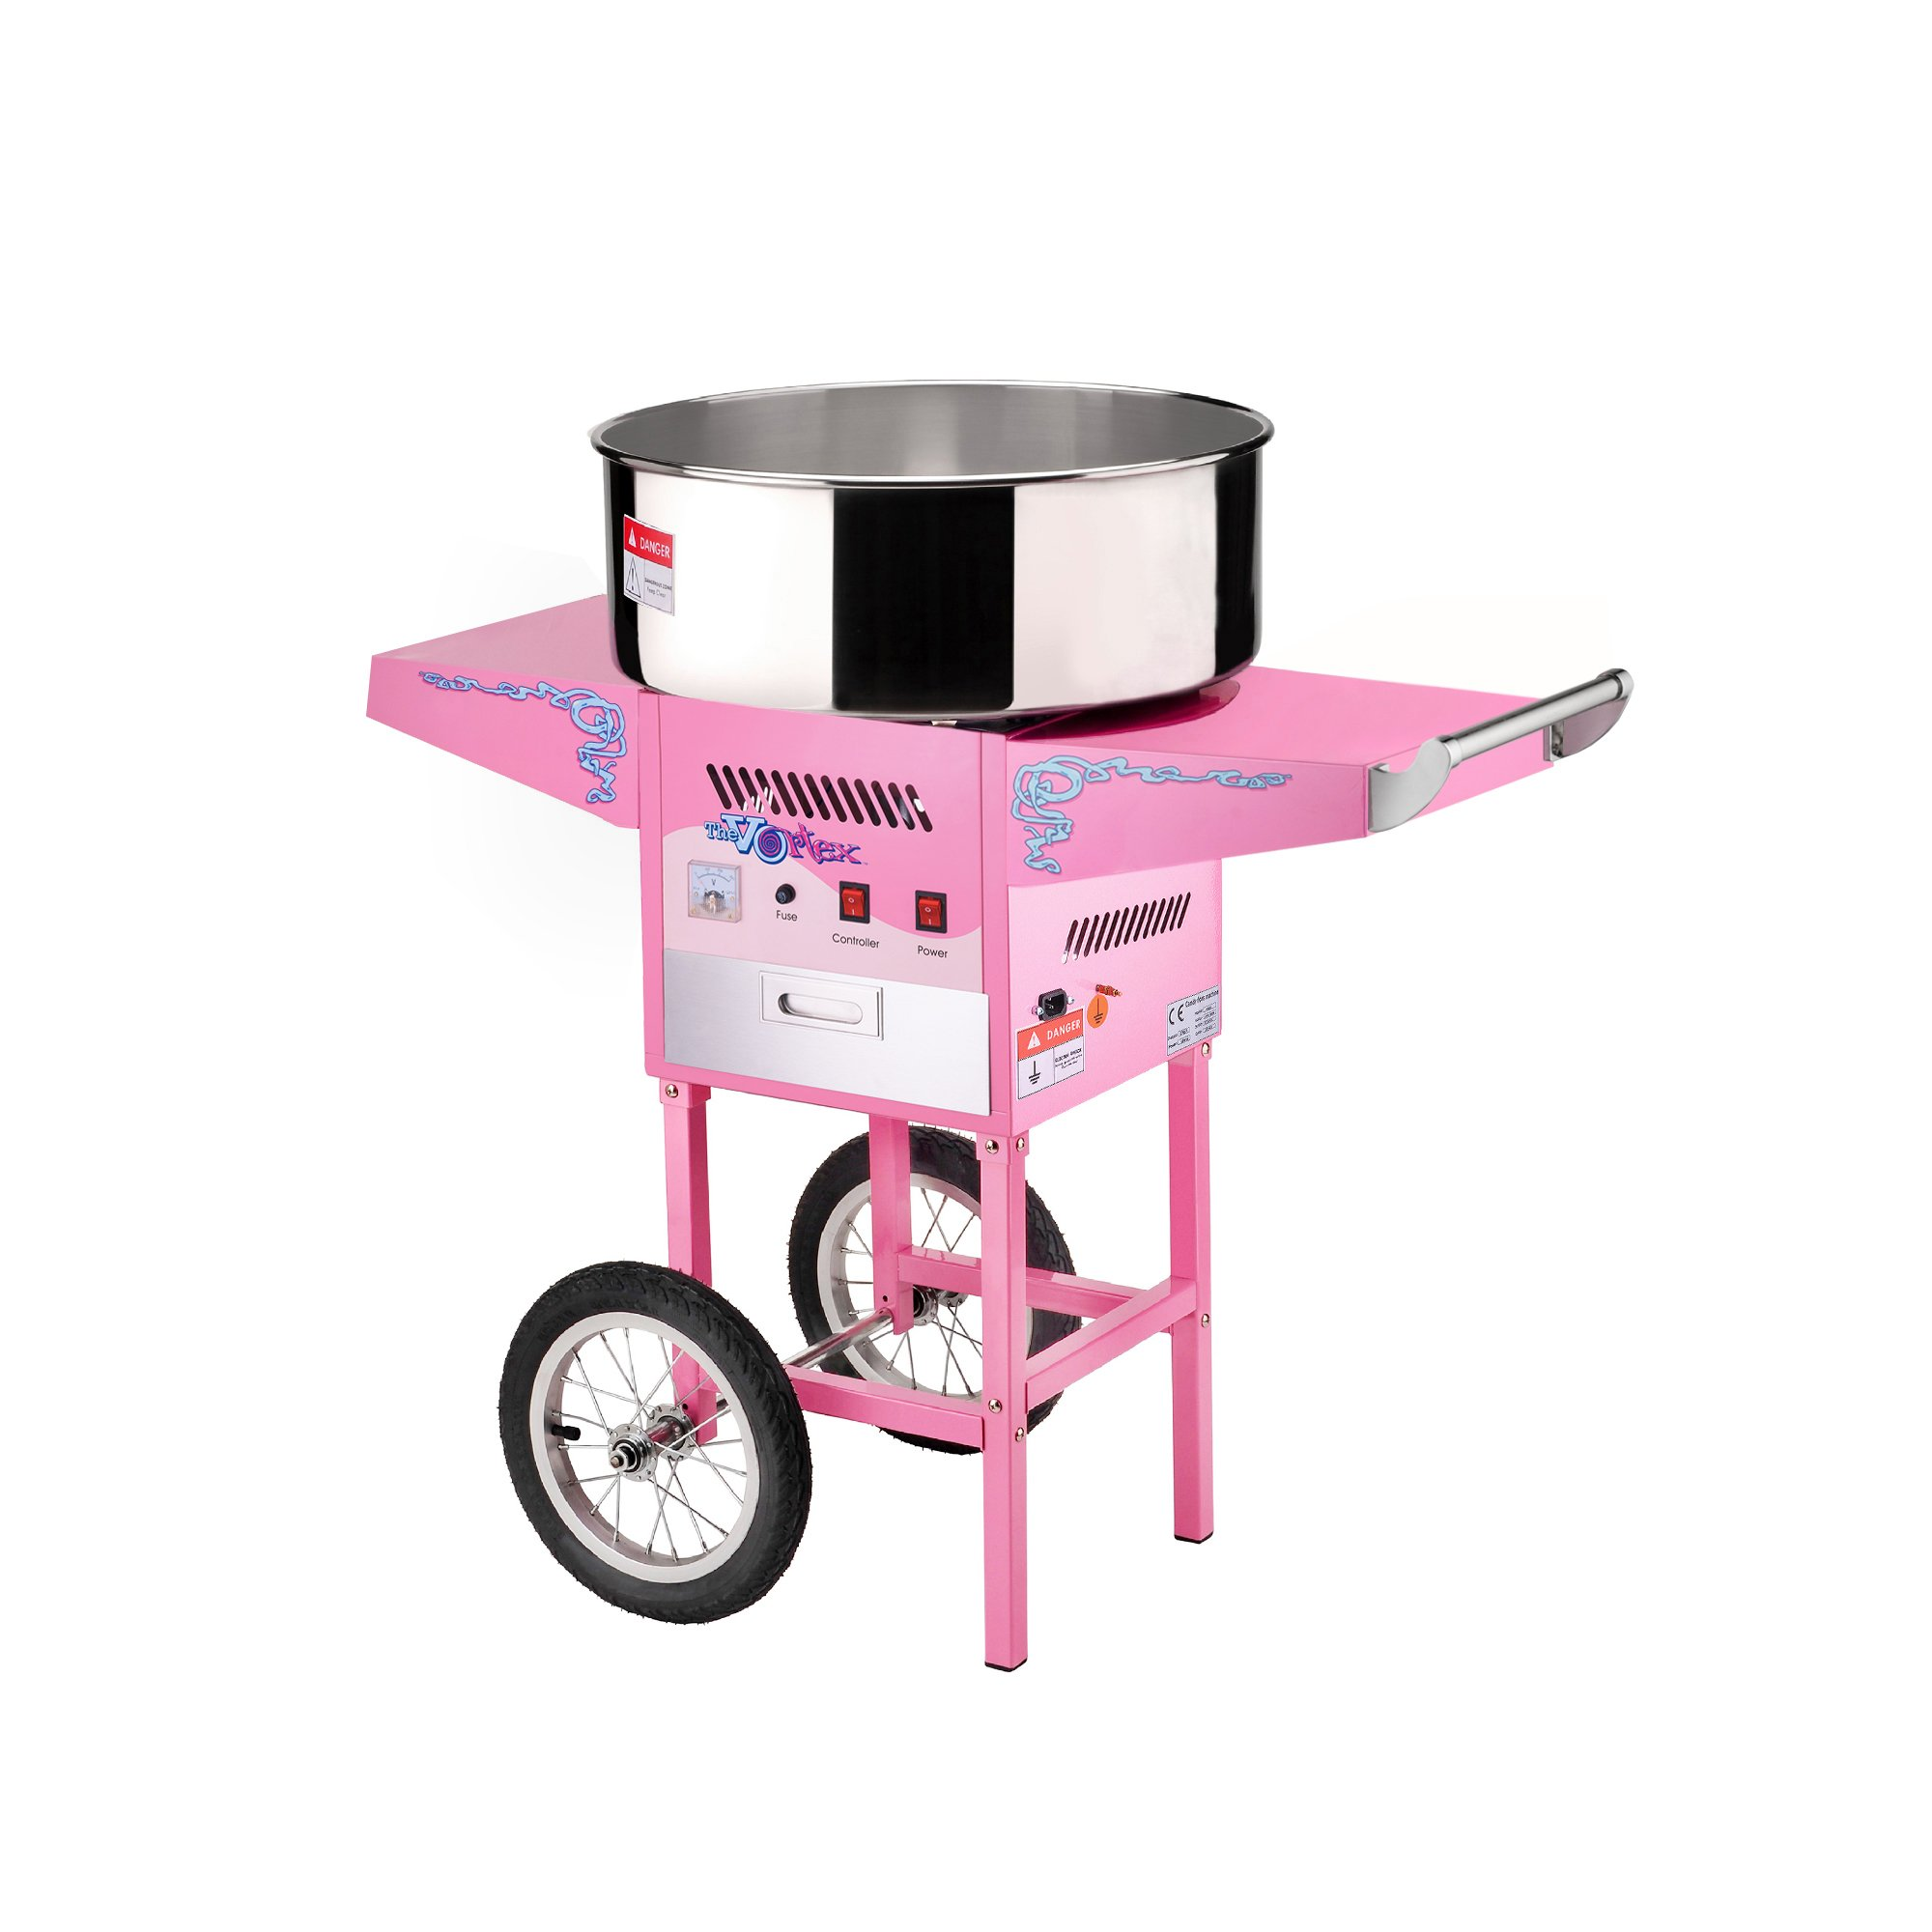 6304 Great Northern Popcorn Commercial Cotton Candy Machine Floss Maker With Cart by Great Northern Popcorn Company